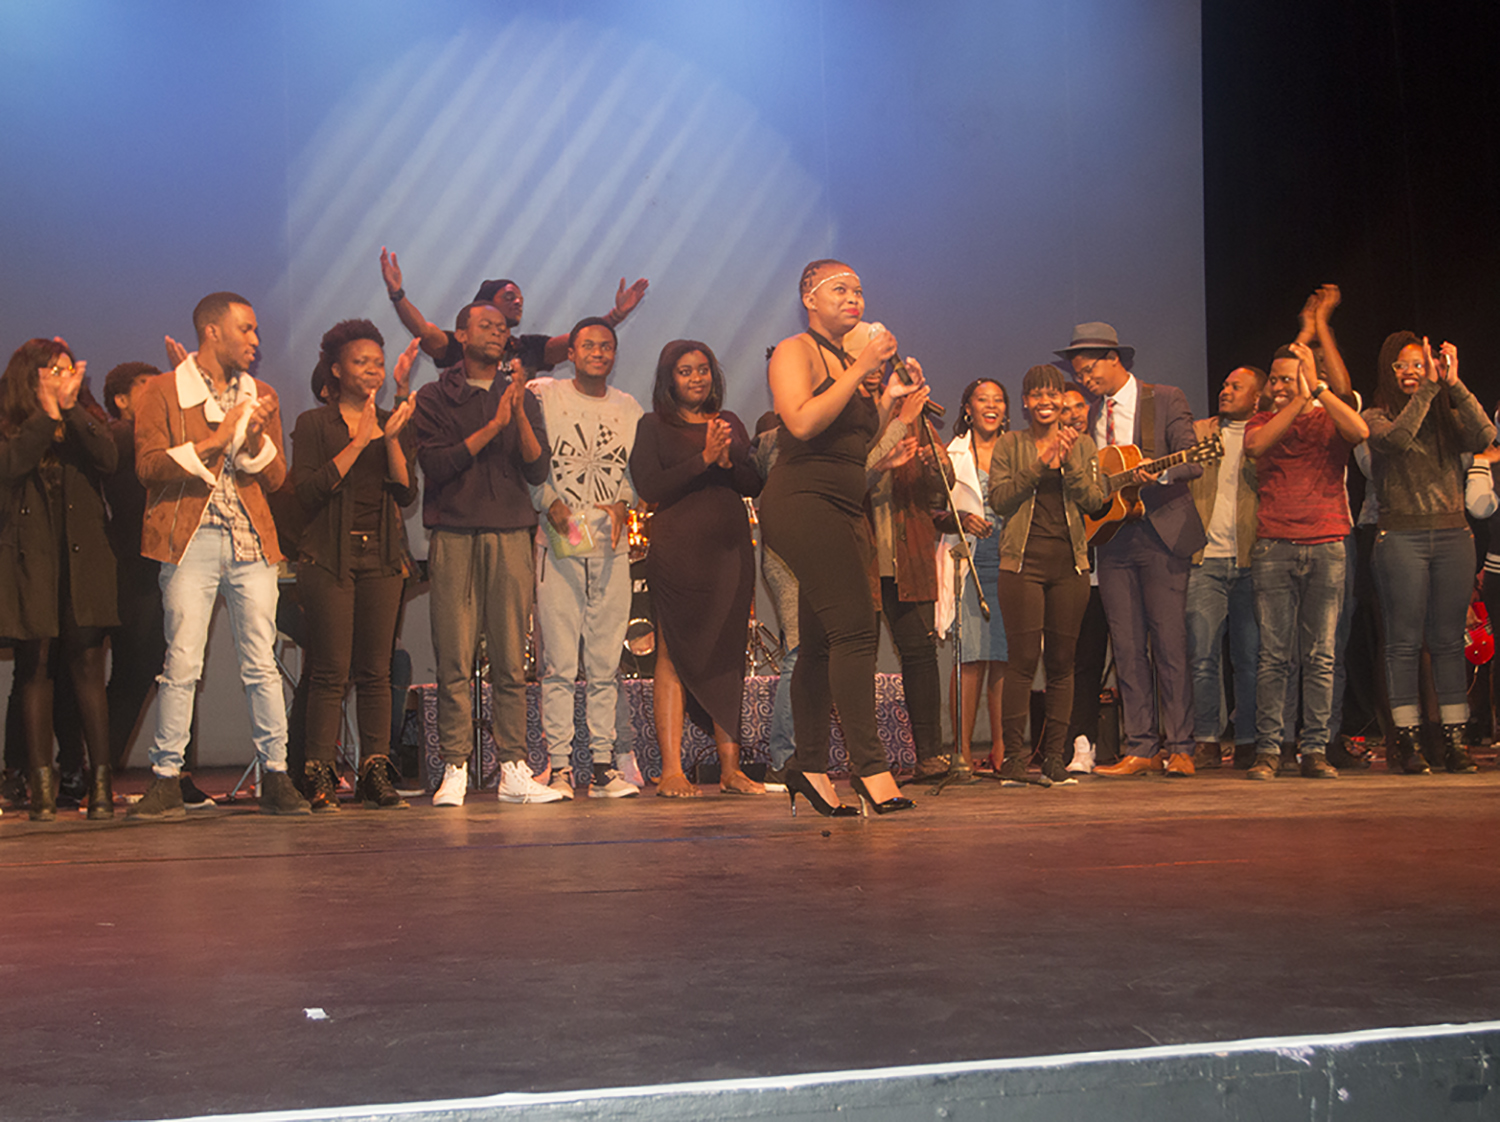 MUSOC Society uses art to tell the message of transformation at the Wits Theatre